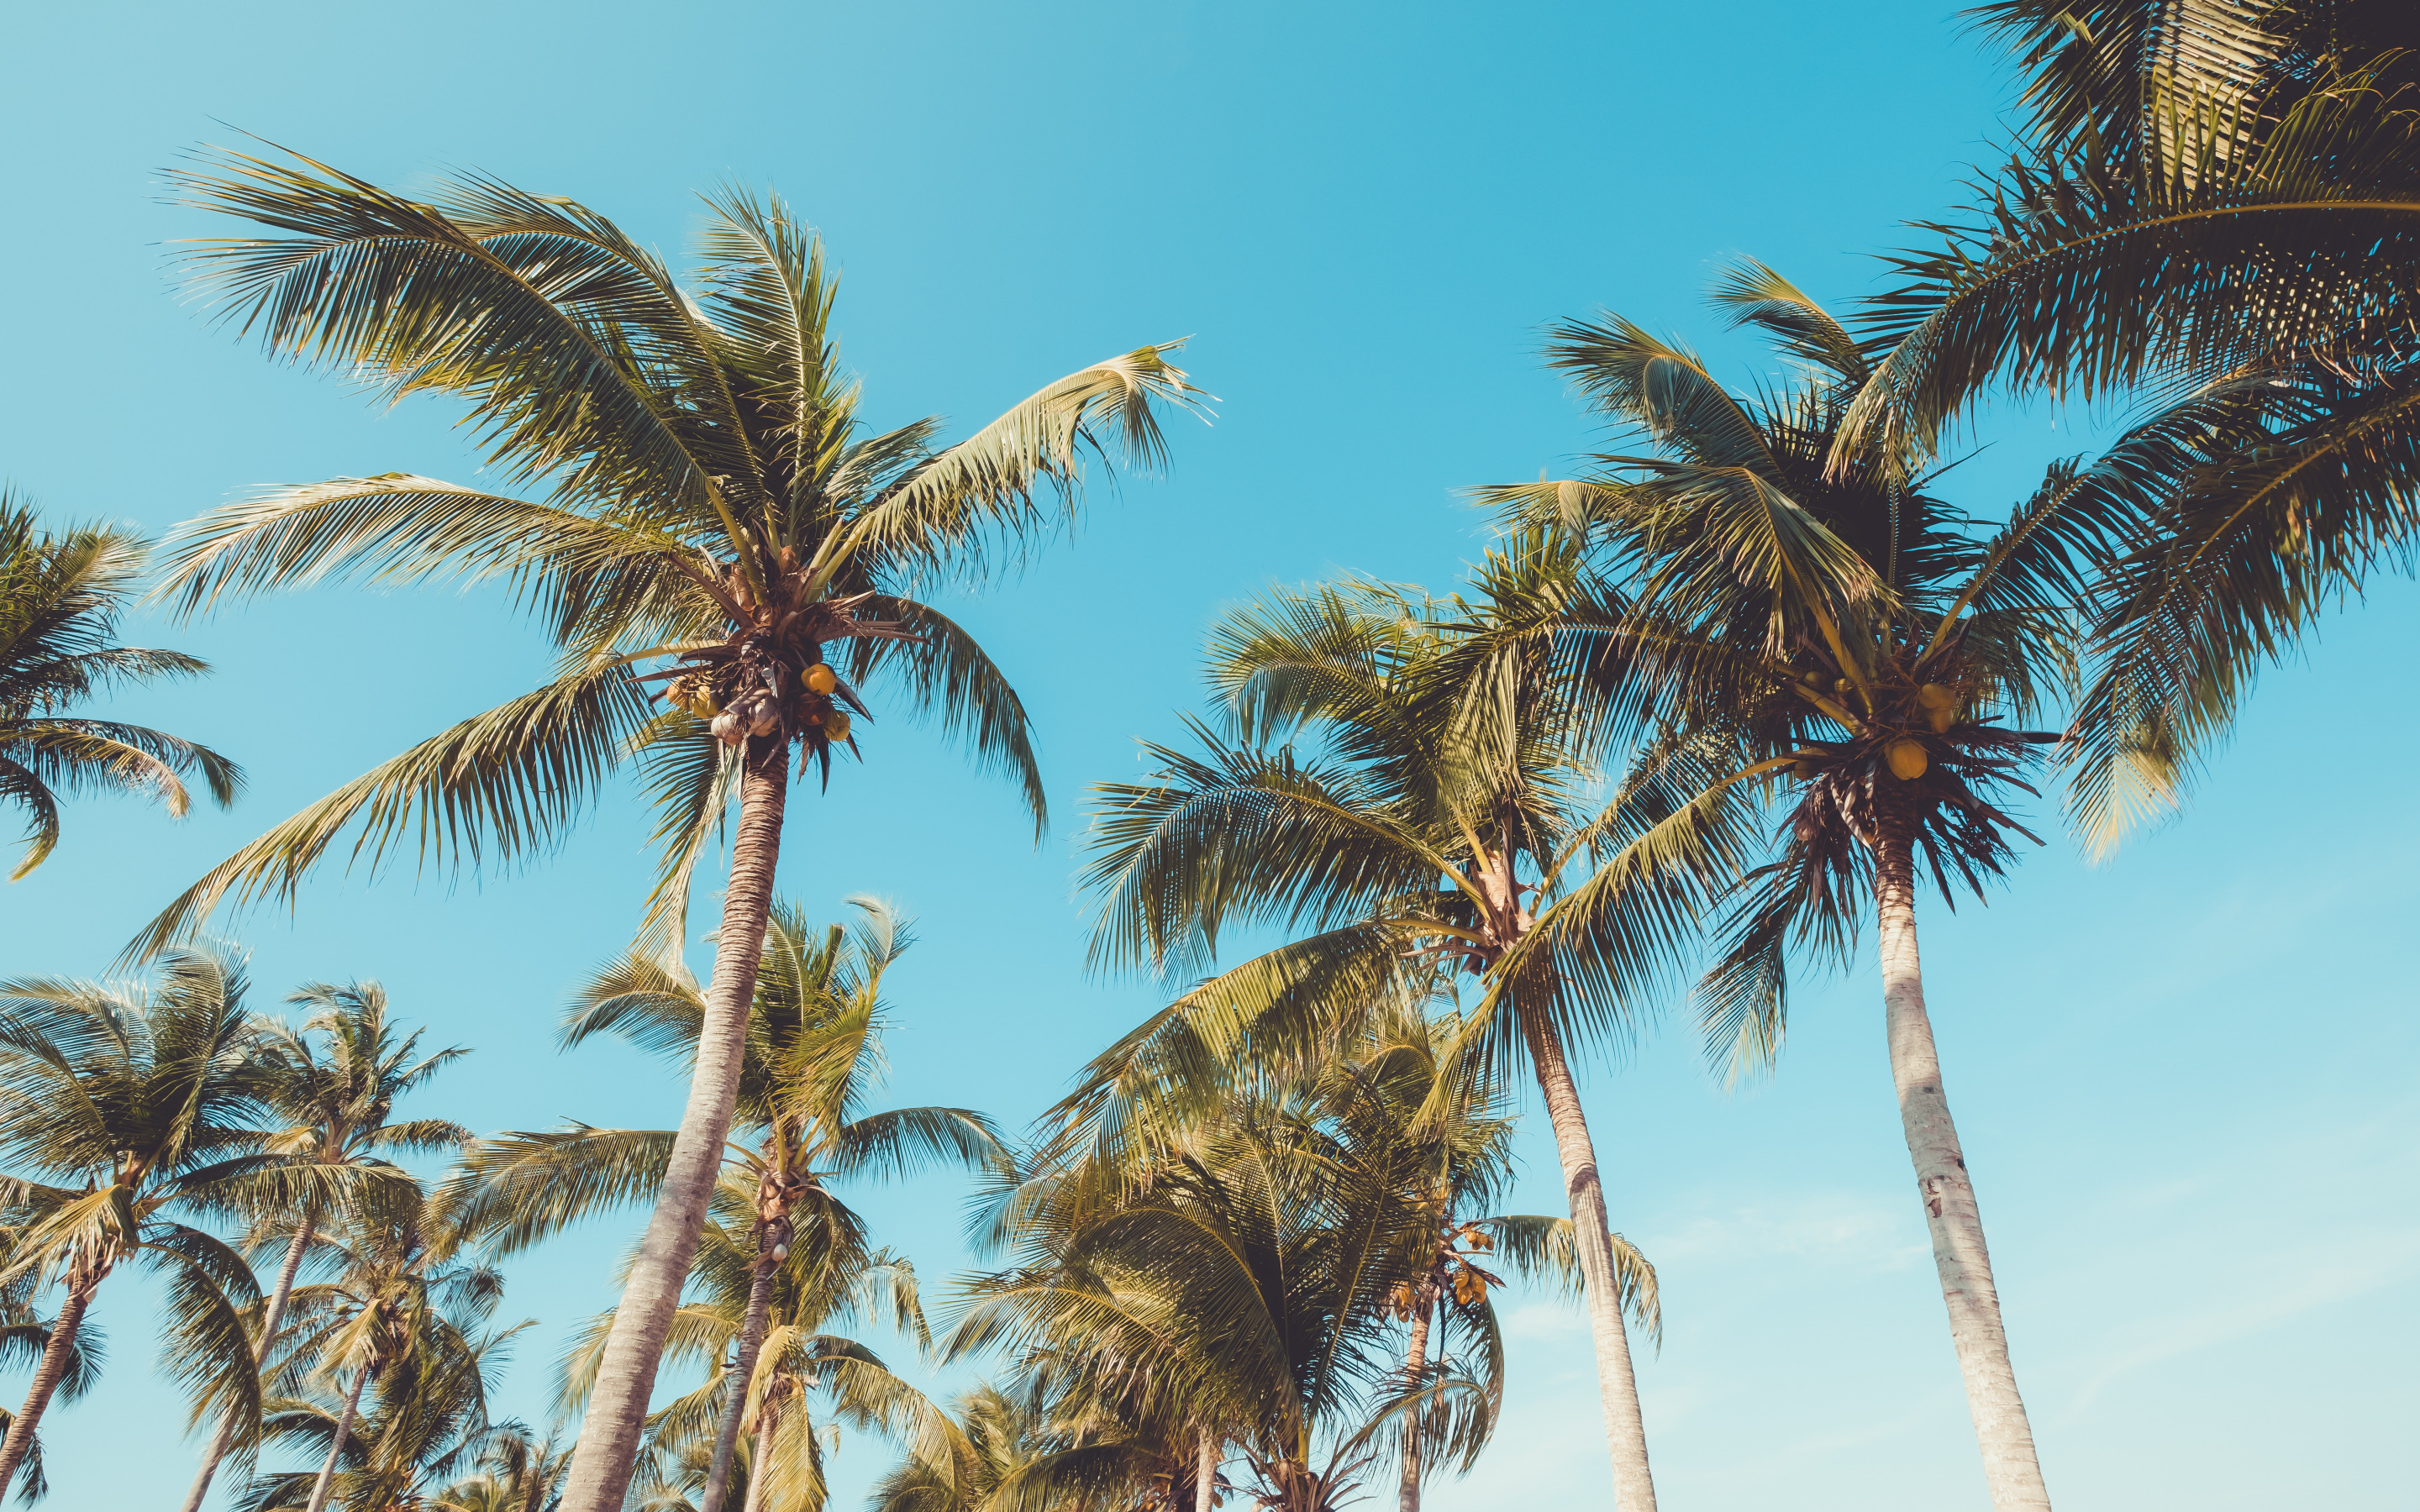 Tropical Island, Palm Trees, Coconuts, Blue Clear Sky, - High Resolution Coconut Tree - HD Wallpaper